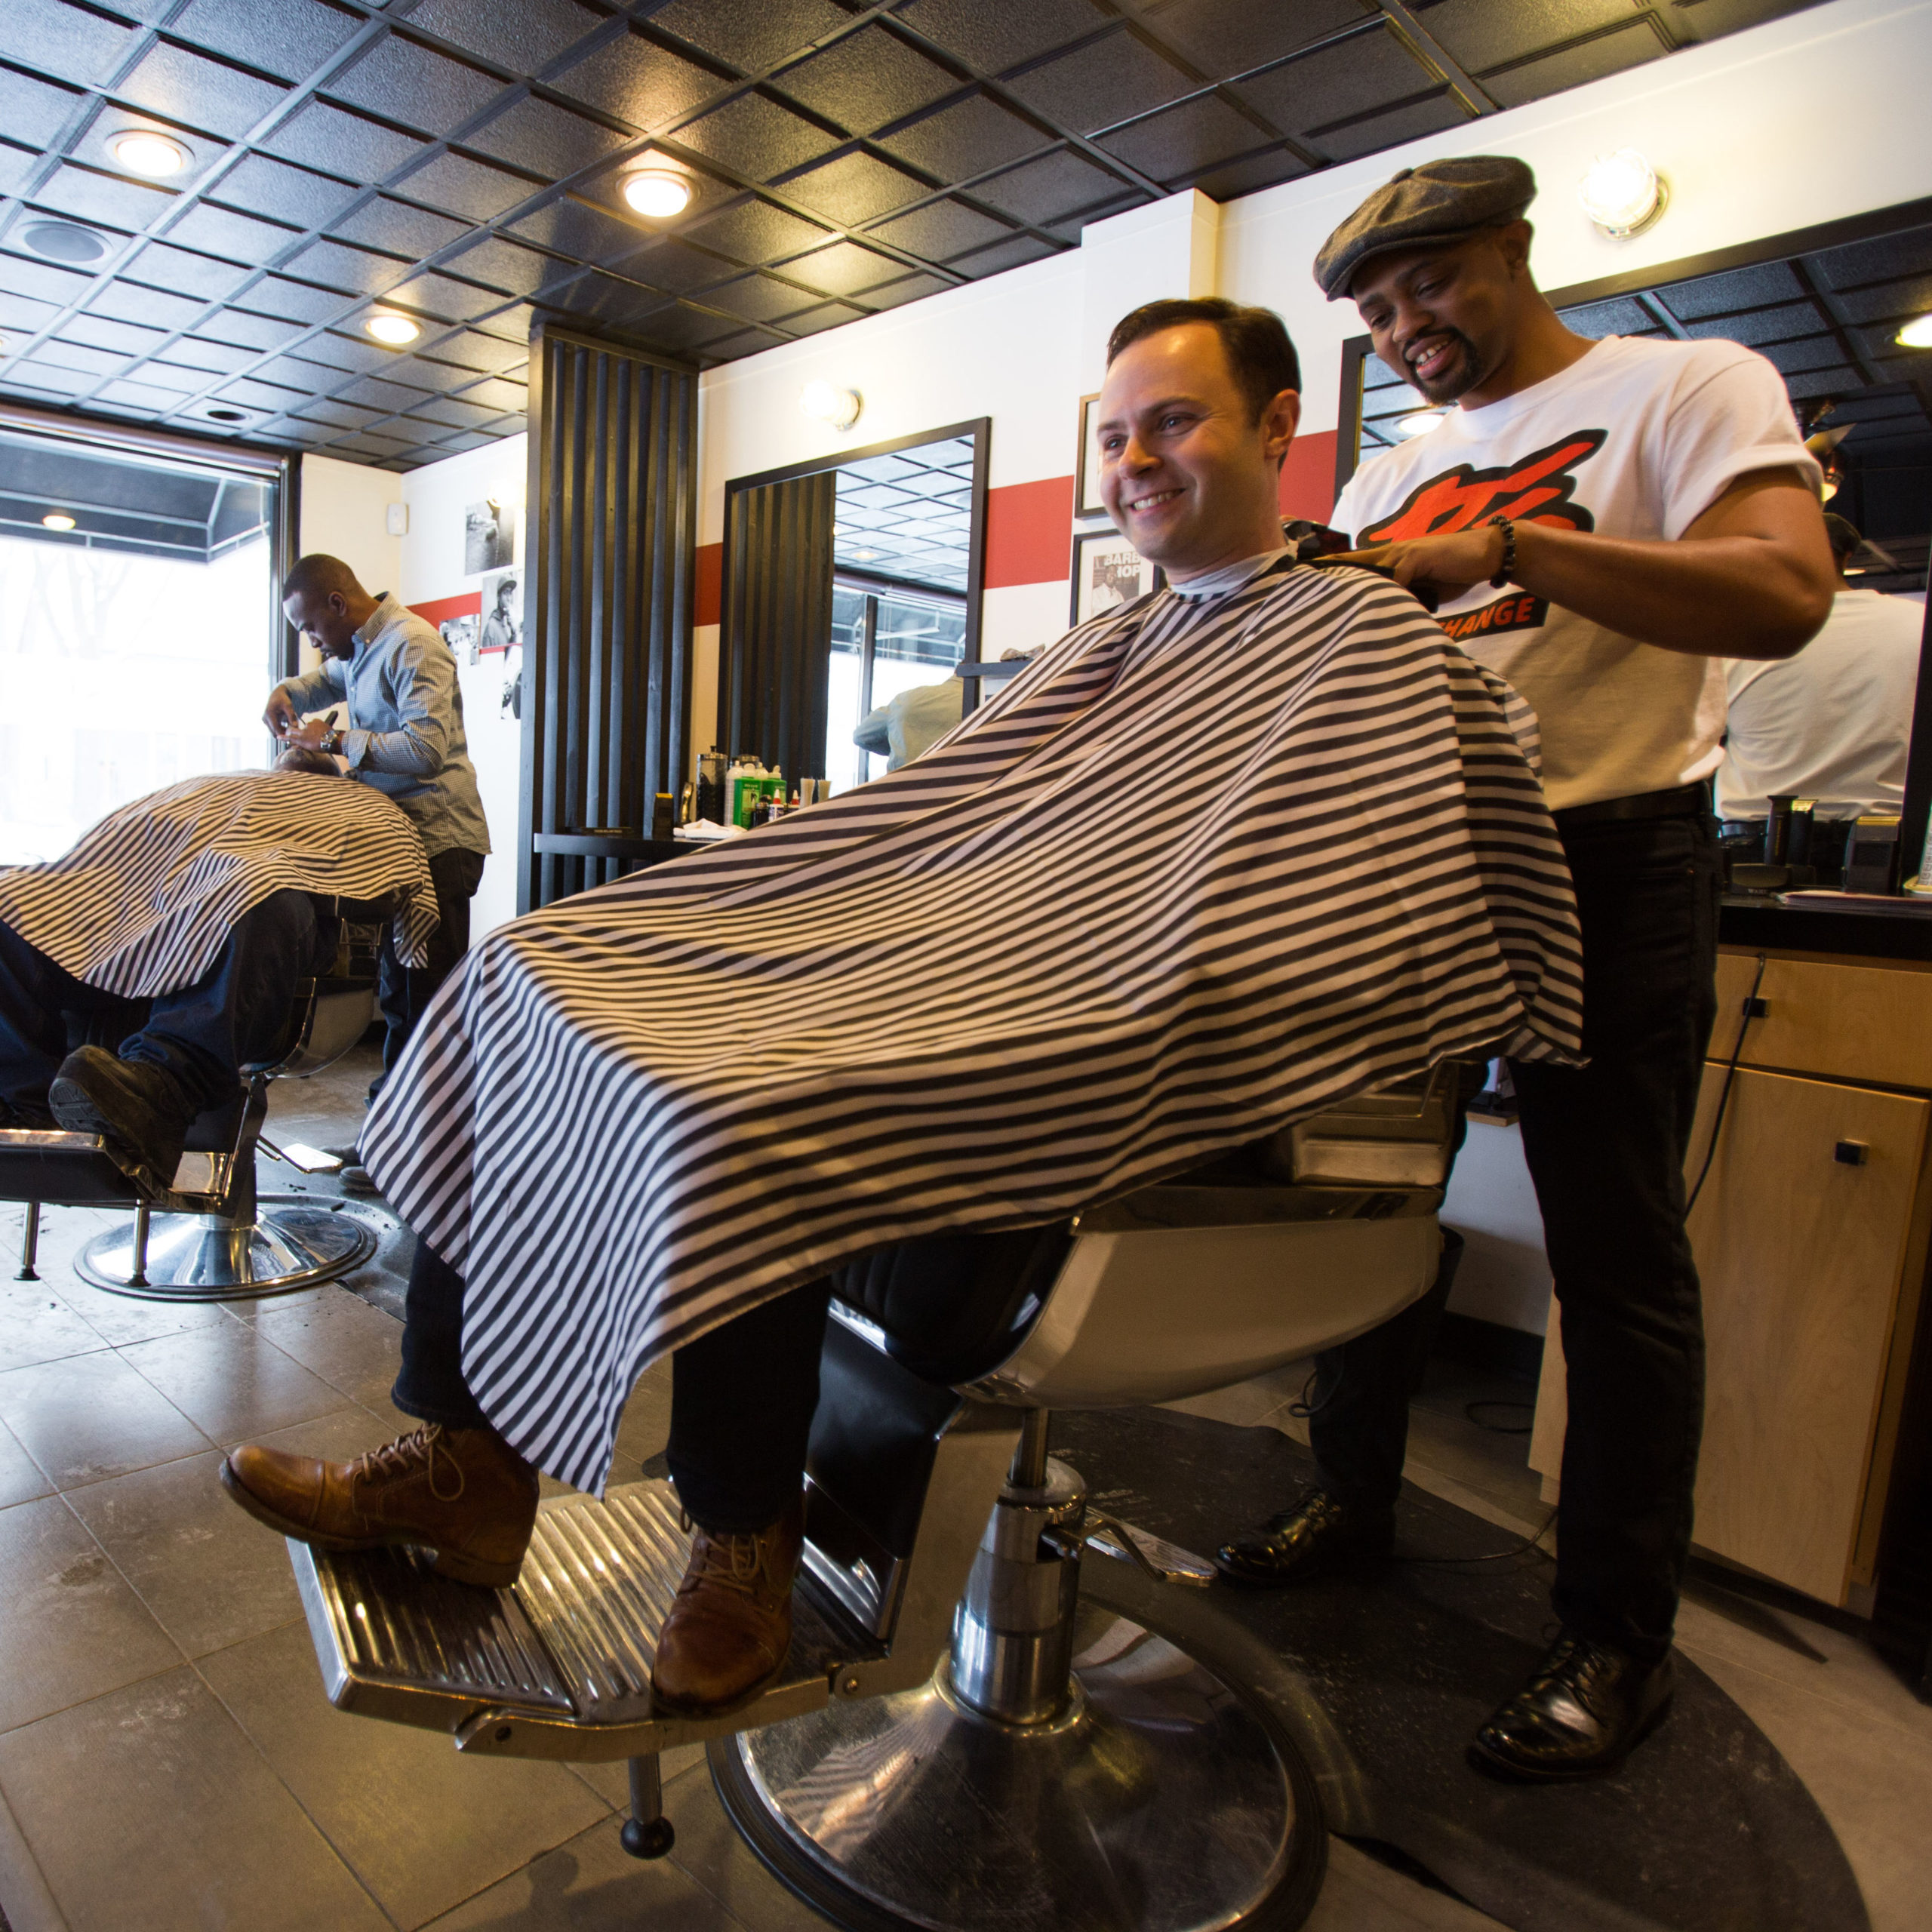 Jake Sturgis, owner of Captivate Media, smiling, getting a haircut in a barbershop.